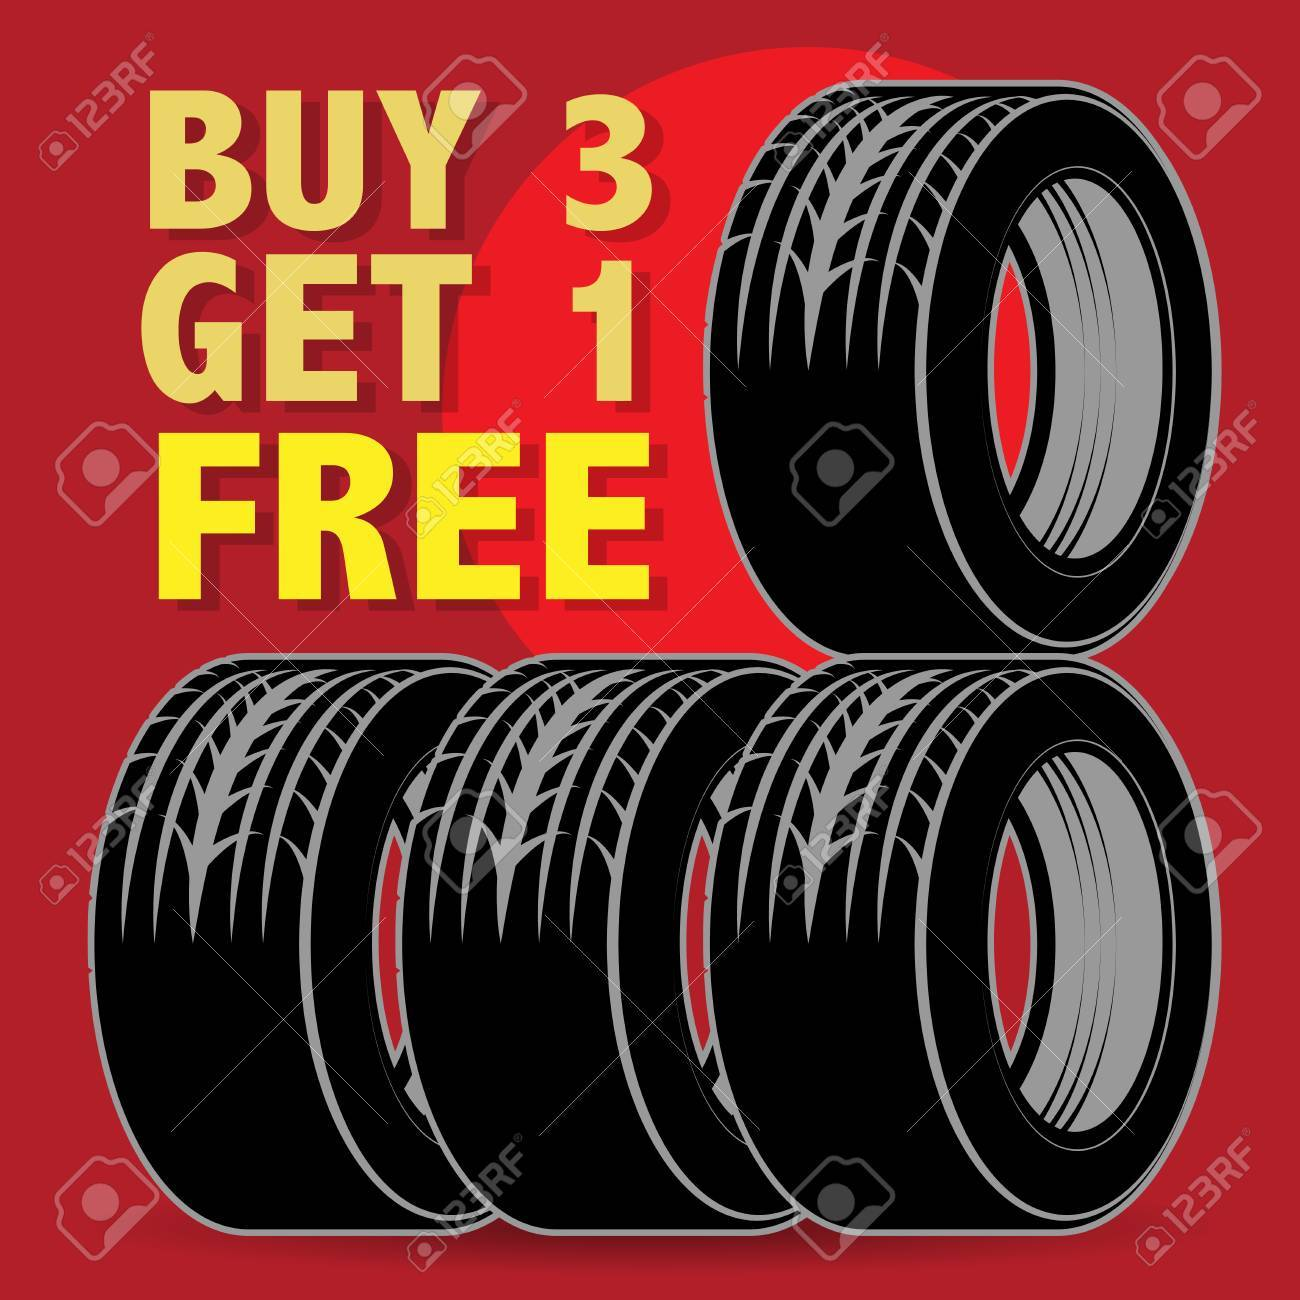 Buy 3 Get 1 Free Tires >> Abstract Label With Tires And The Text Buy 3 Get 1 Free Written